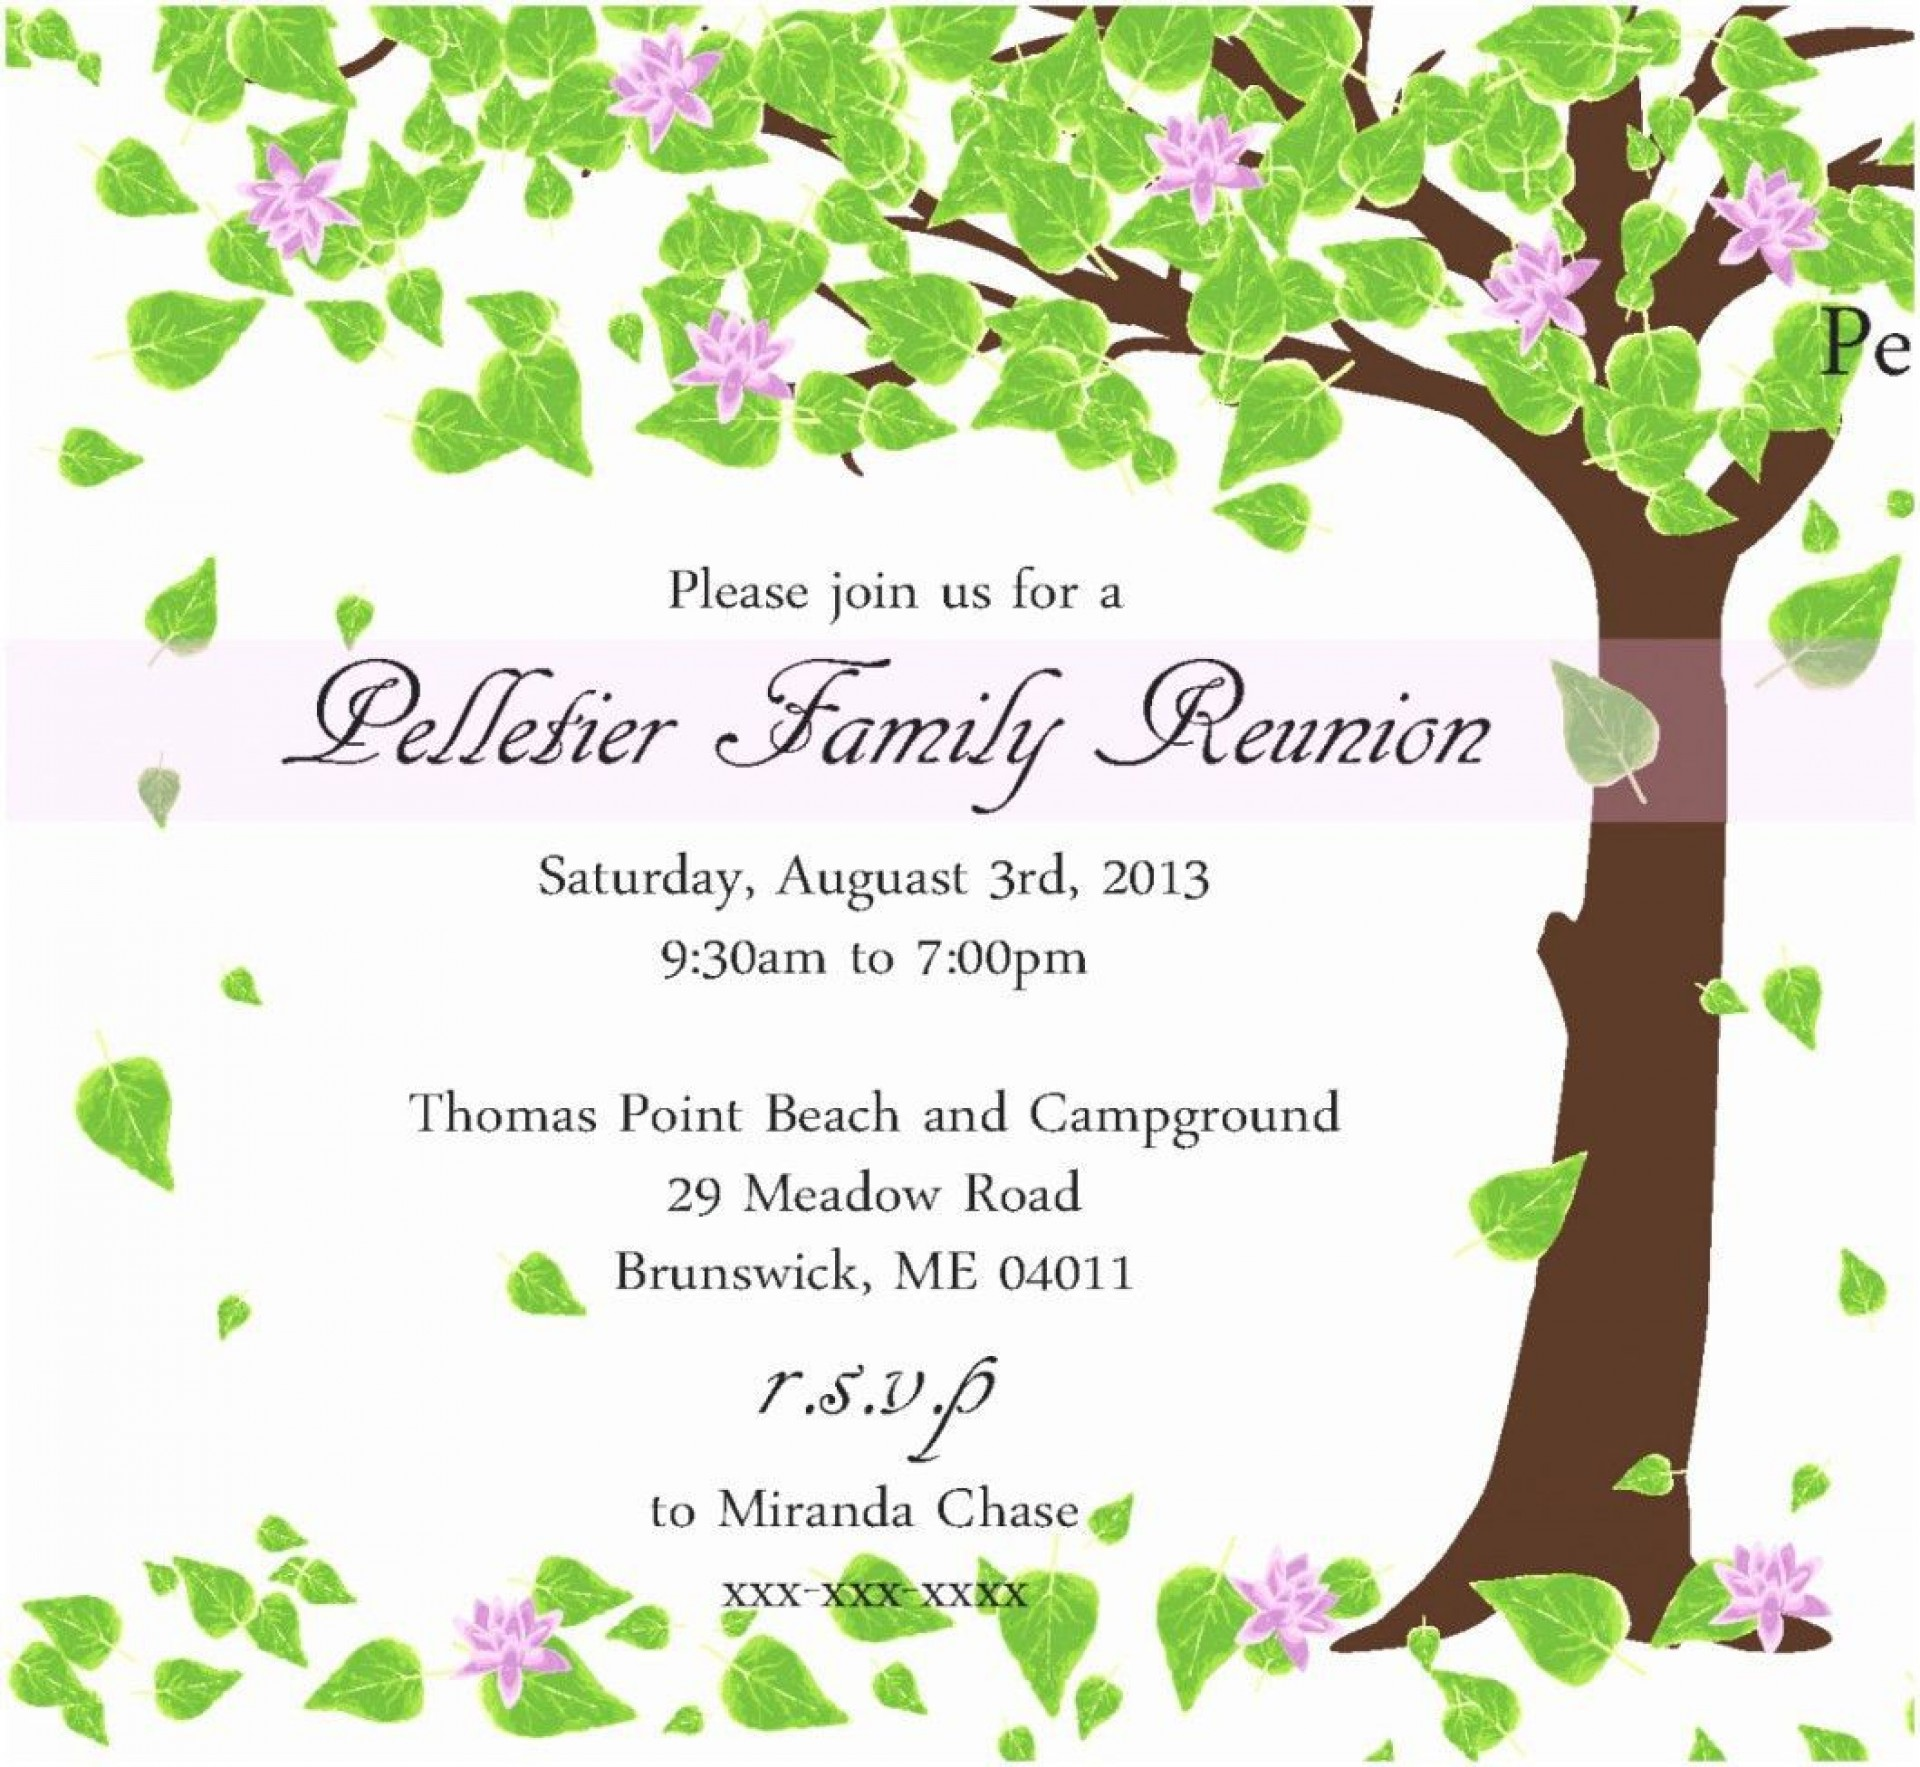 005 Surprising Family Reunion Invitation Template Free Highest Quality  For Word Online1920